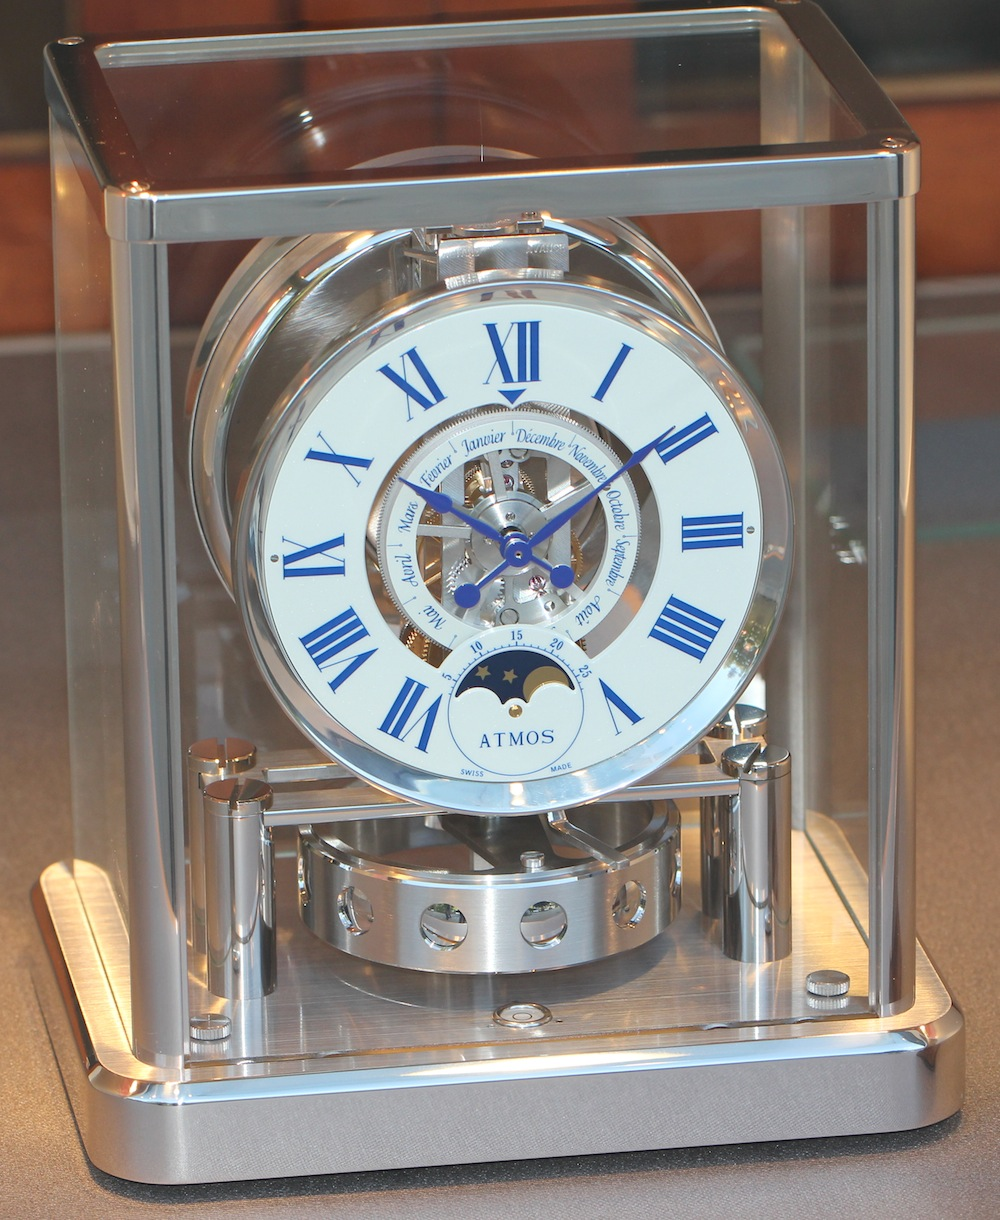 dating an atmos clock Atmos clock: wikis: to date, over 500,000 atmos clocks have been produced [2] references lecoultre atmos clock history sacks, adam michael how the atmos works.